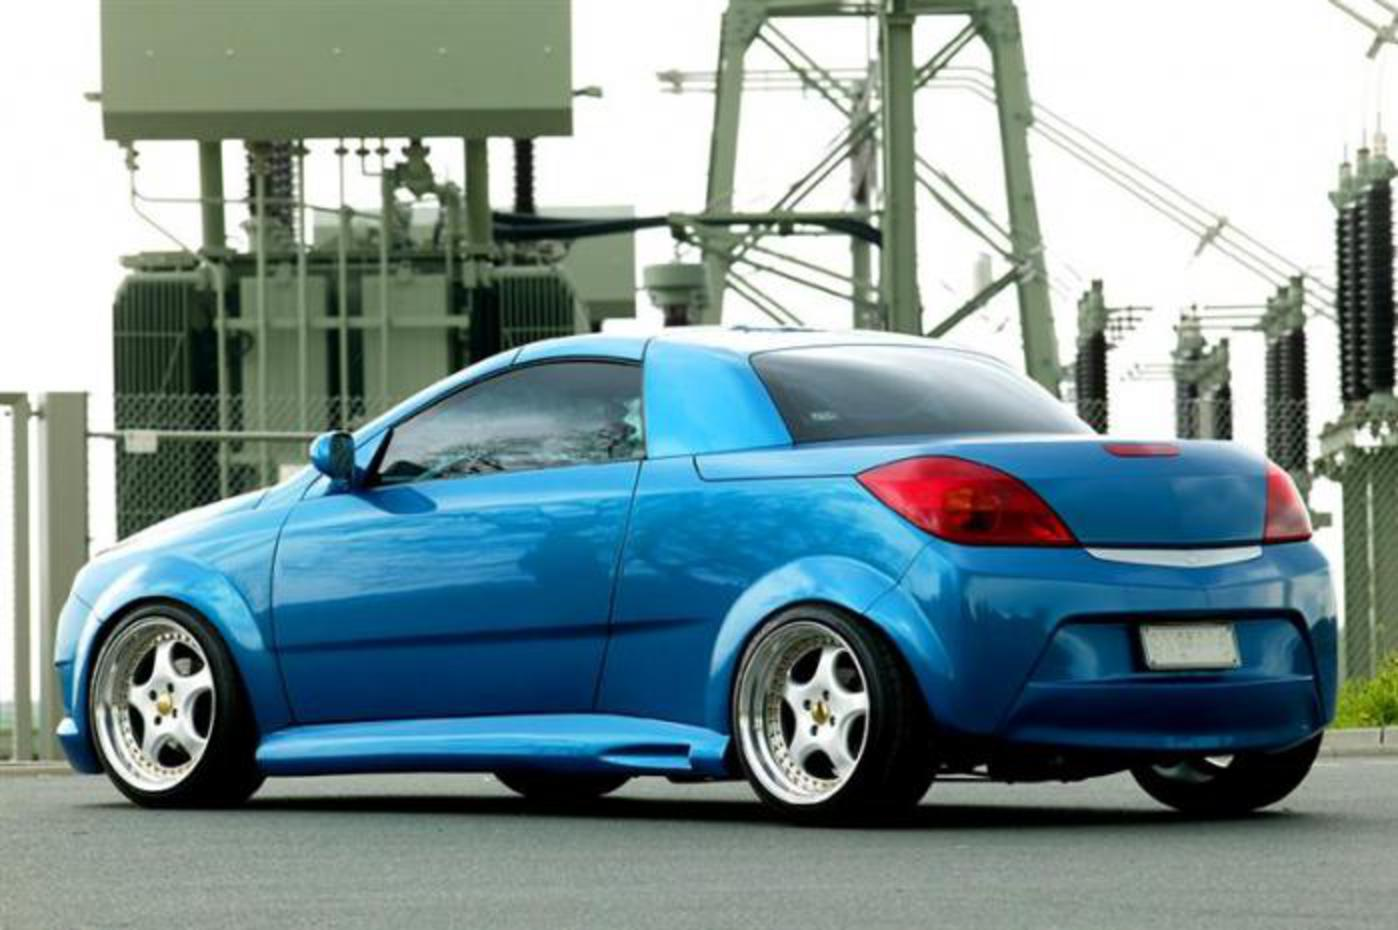 Opel Tigra: 05 photo